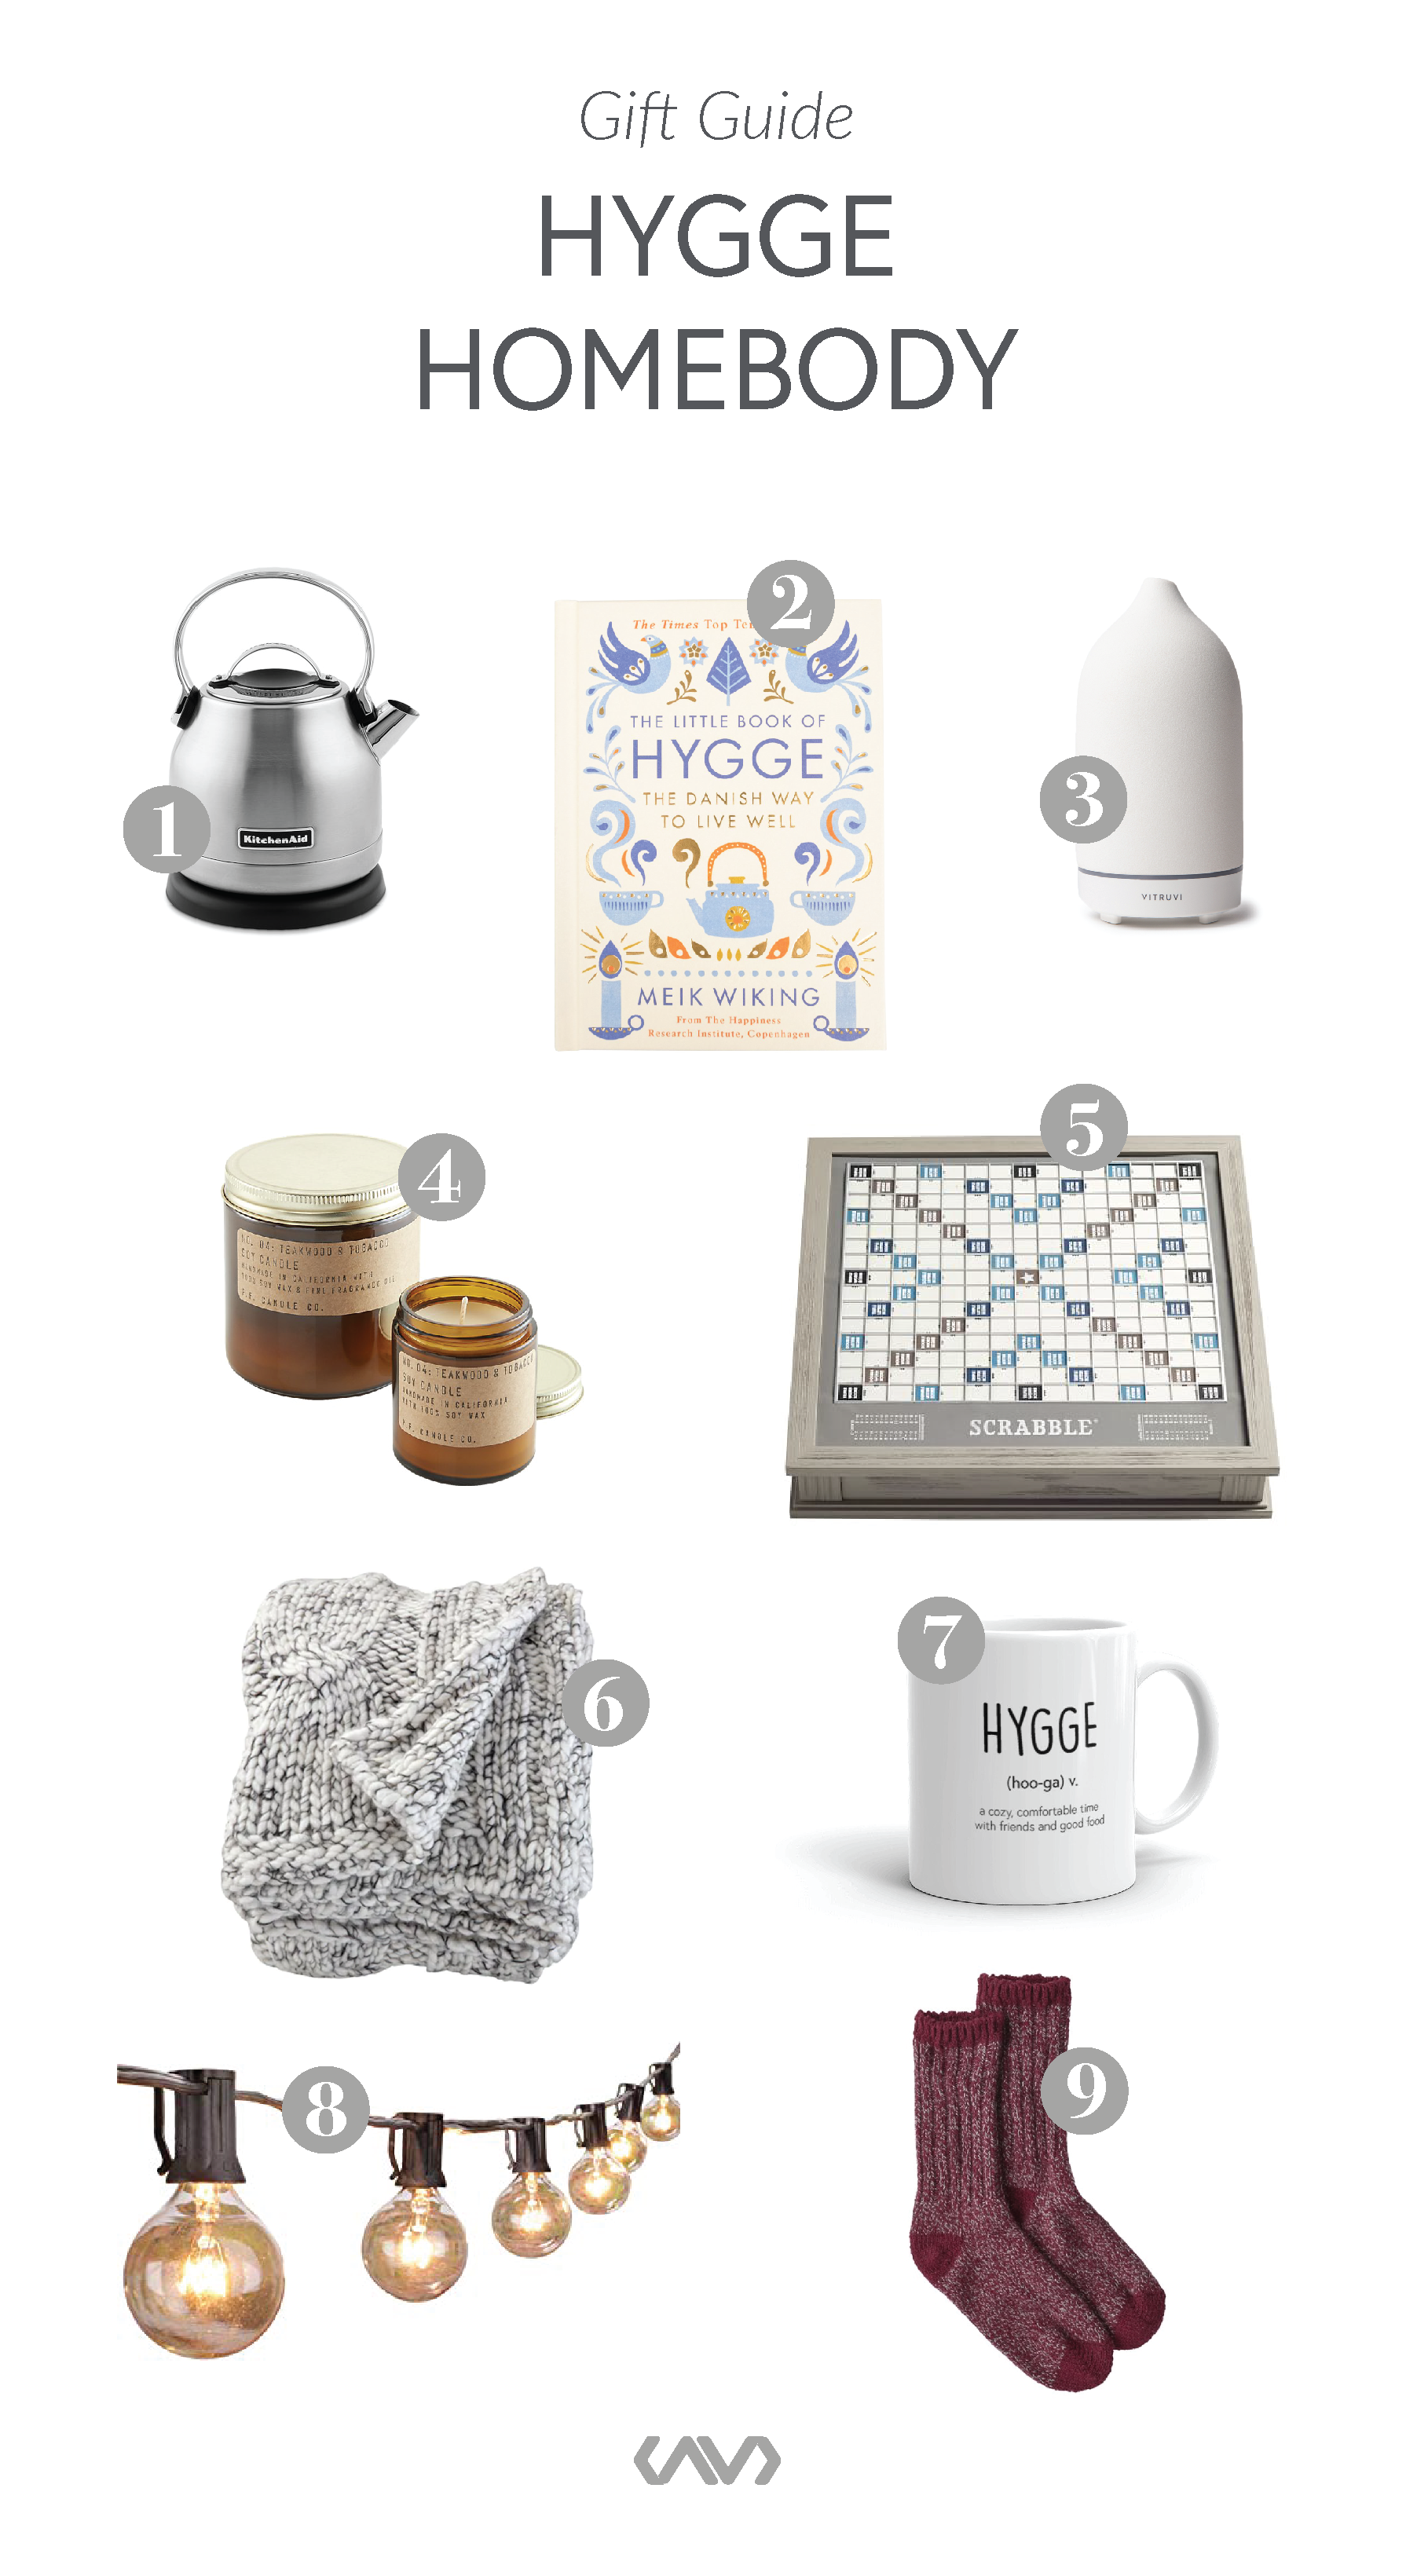 Hygge Homebody 5-02-02-02.png